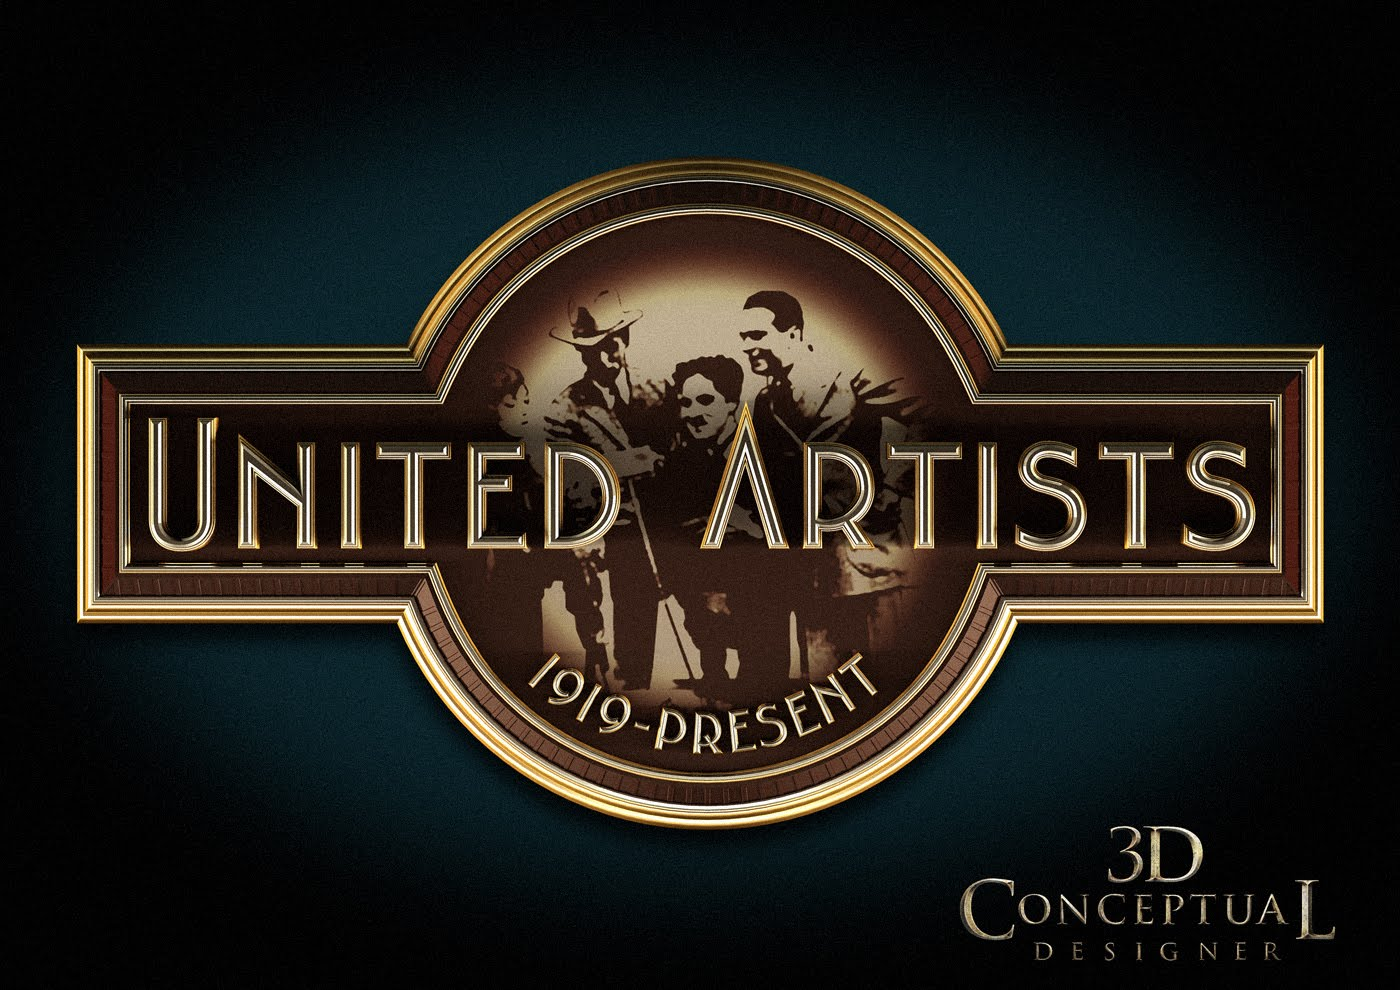 united artists logos